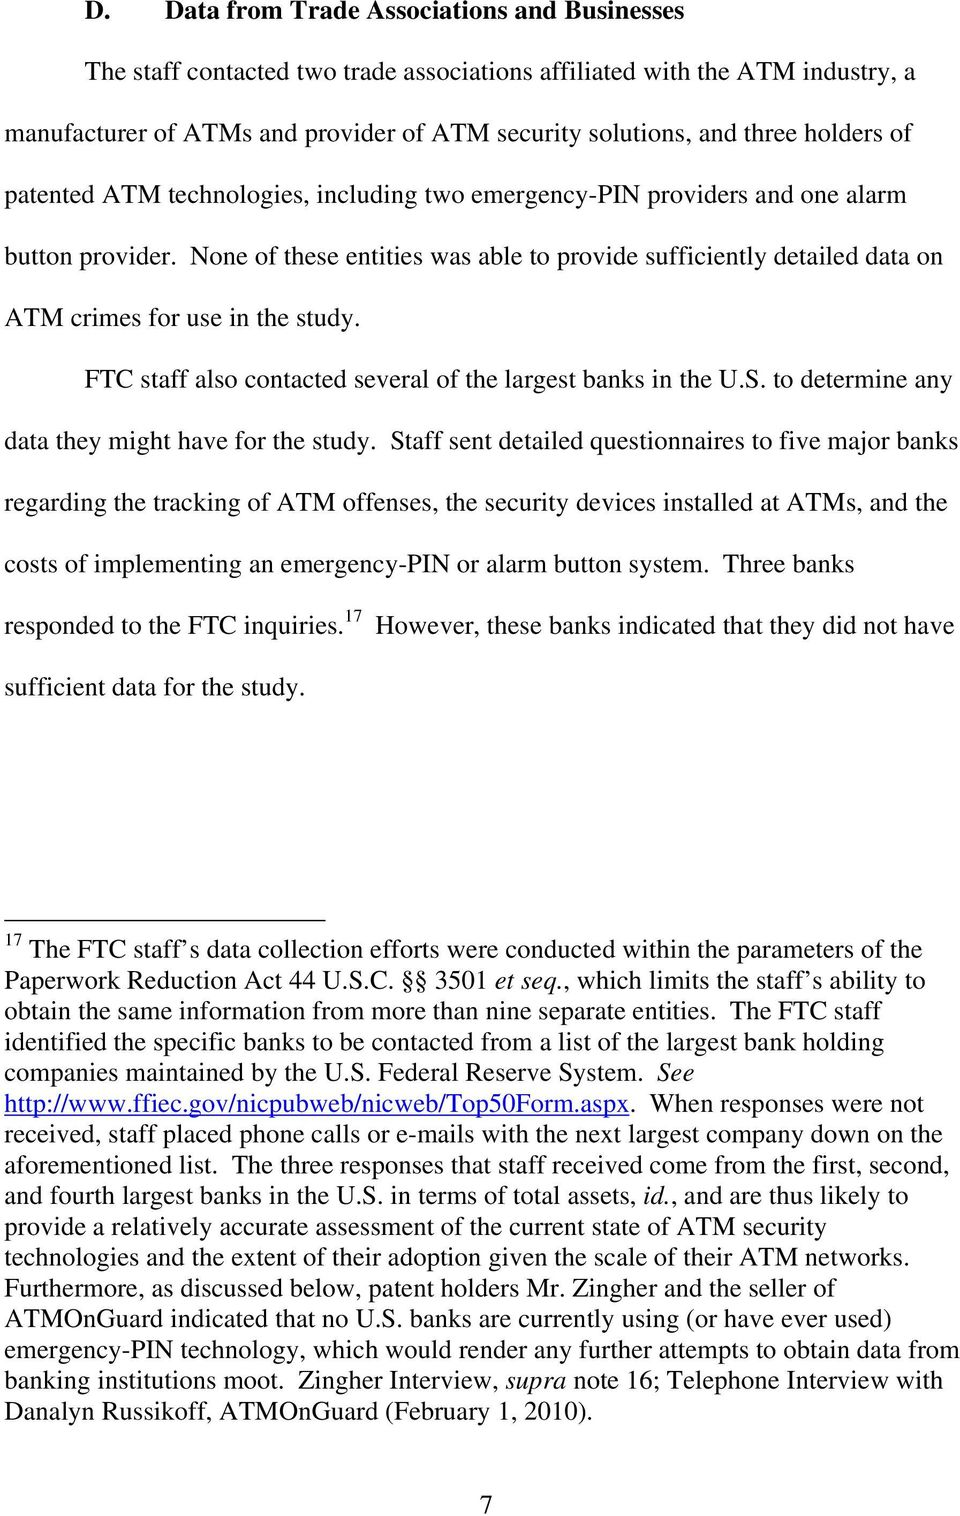 None of these entities was able to provide sufficiently detailed data on ATM crimes for use in the study. FTC staff also contacted several of the largest banks in the U.S.